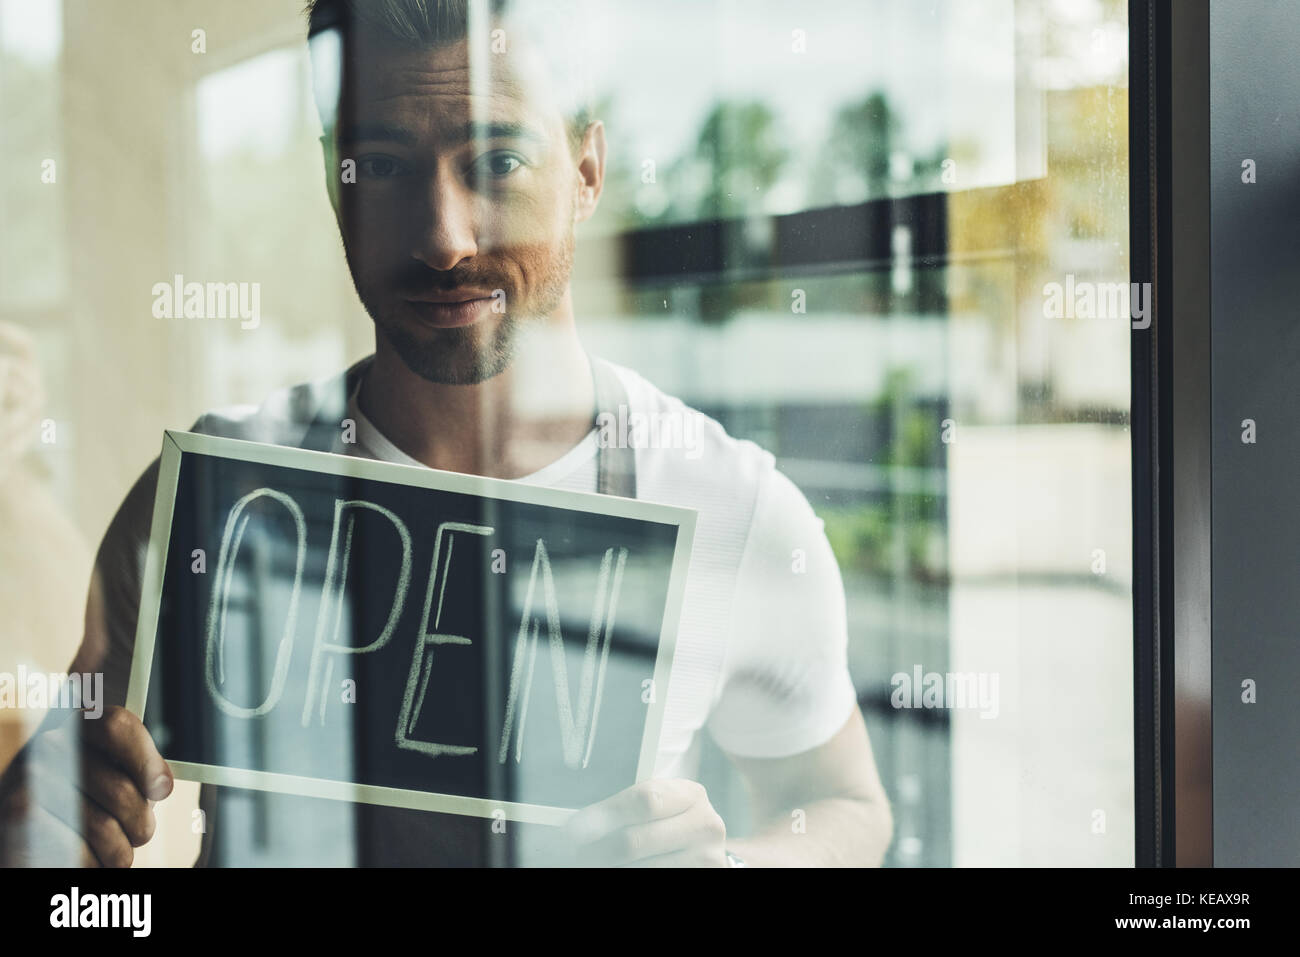 Waiter holding chalkboard with open word Photo Stock